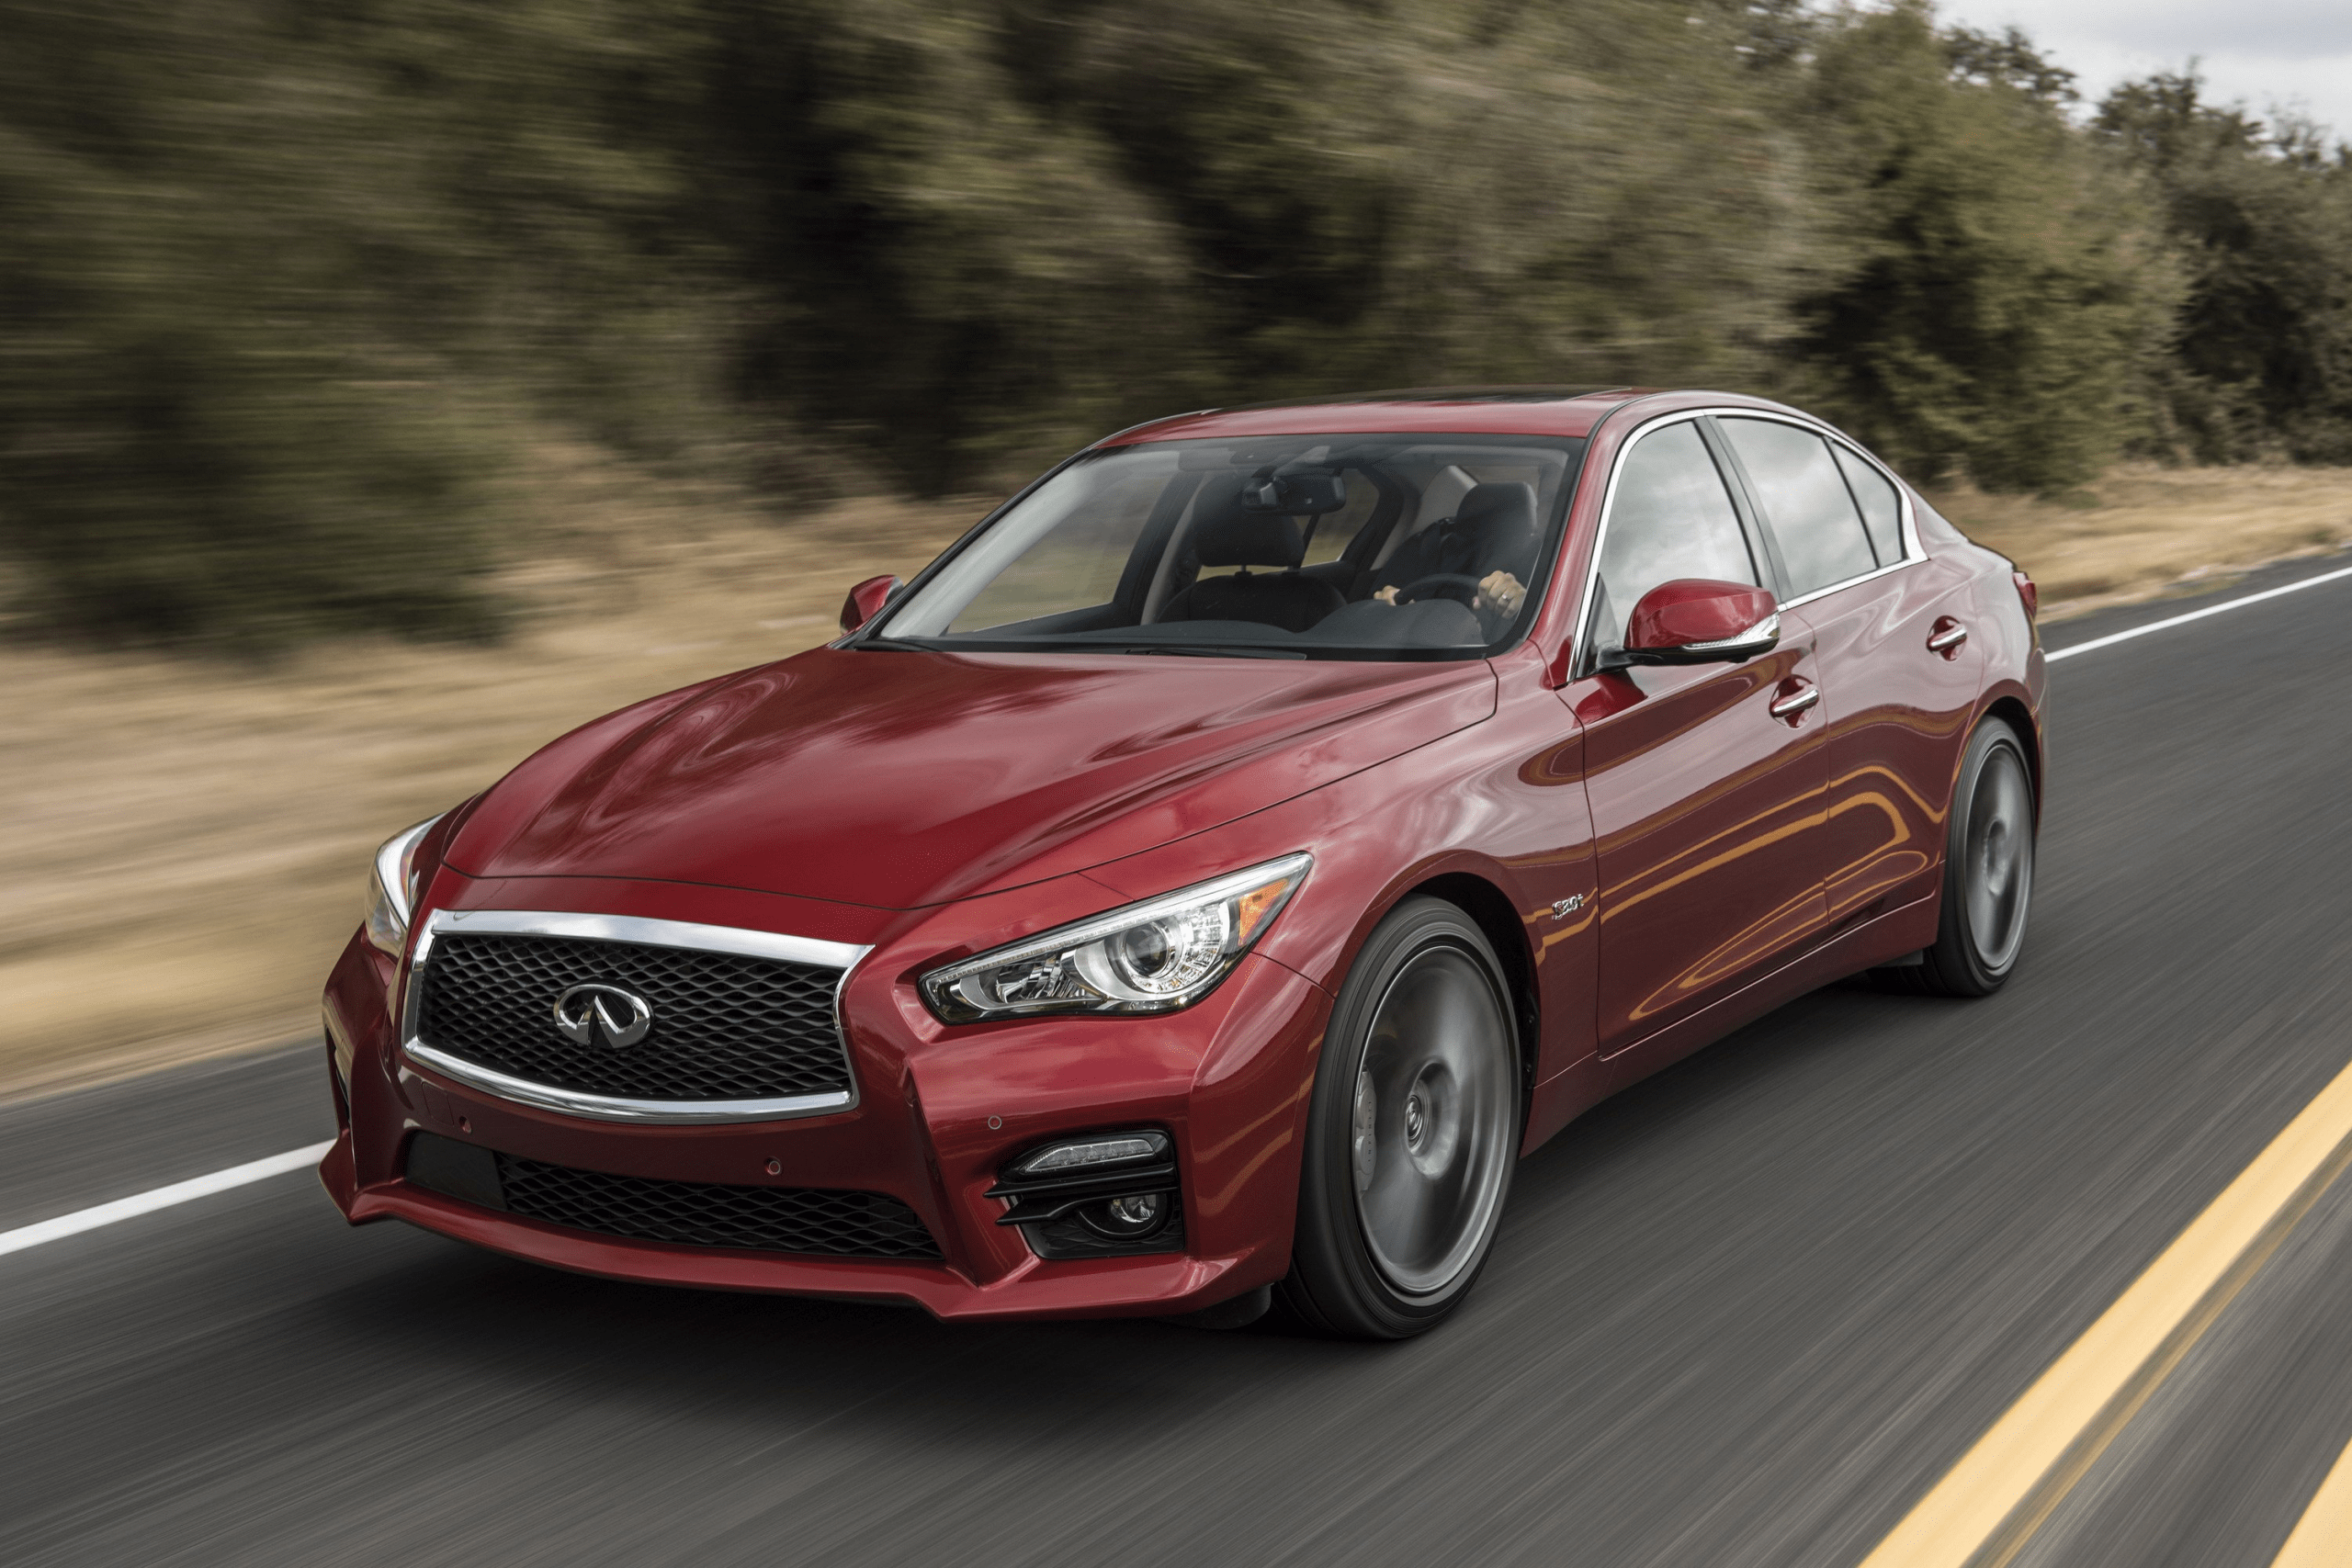 2021 Infiniti Q50 Coupe Eau Rouge Speed Test